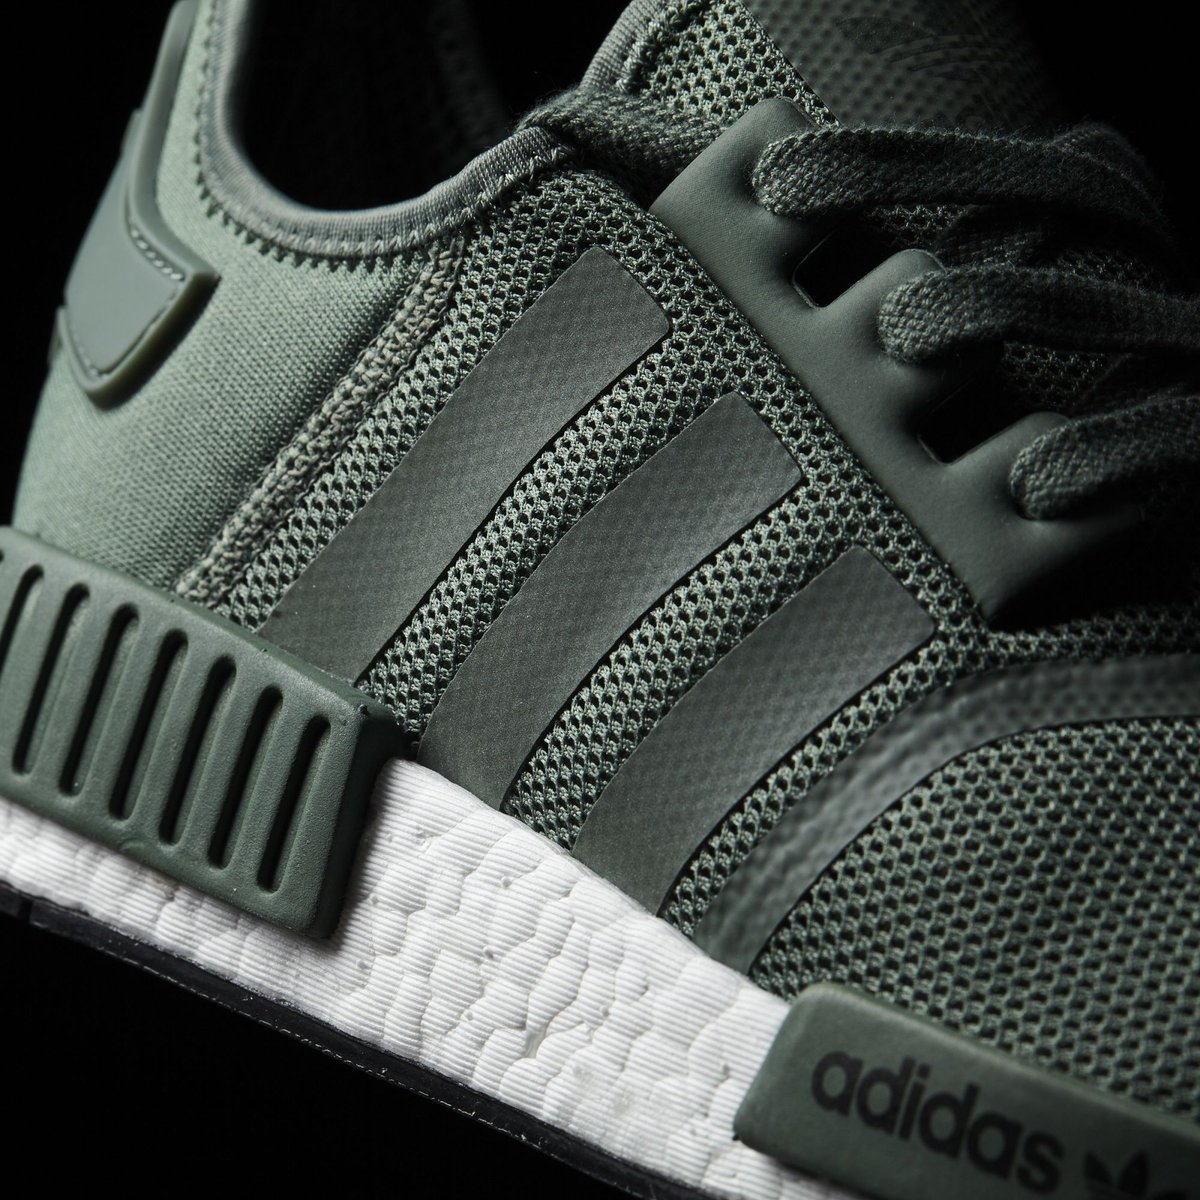 10e976384cef7 Adidas Nmd Shoe Palace kenmore-cleaning.co.uk